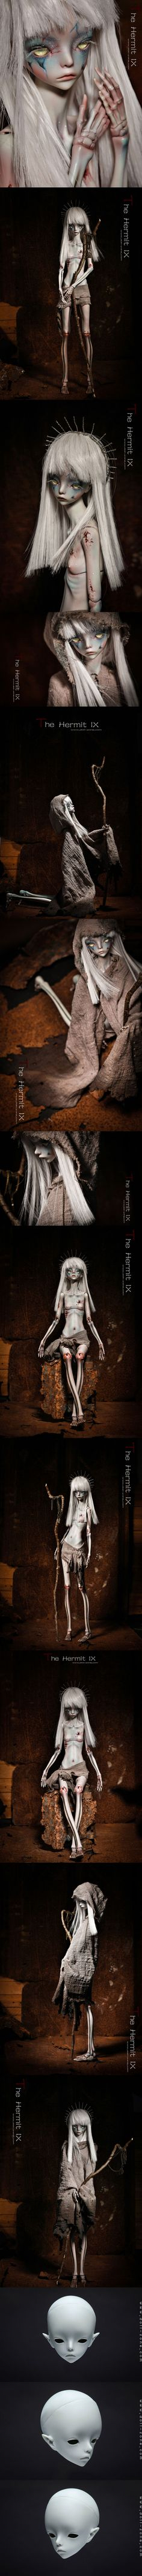 BJD Limited Edition Hermit IX 49cm Girl Ball-jointed Doll_Limited Edition_DOLLZONE_DOLL_Ball Jointed Dolls (BJD) company-Legenddoll